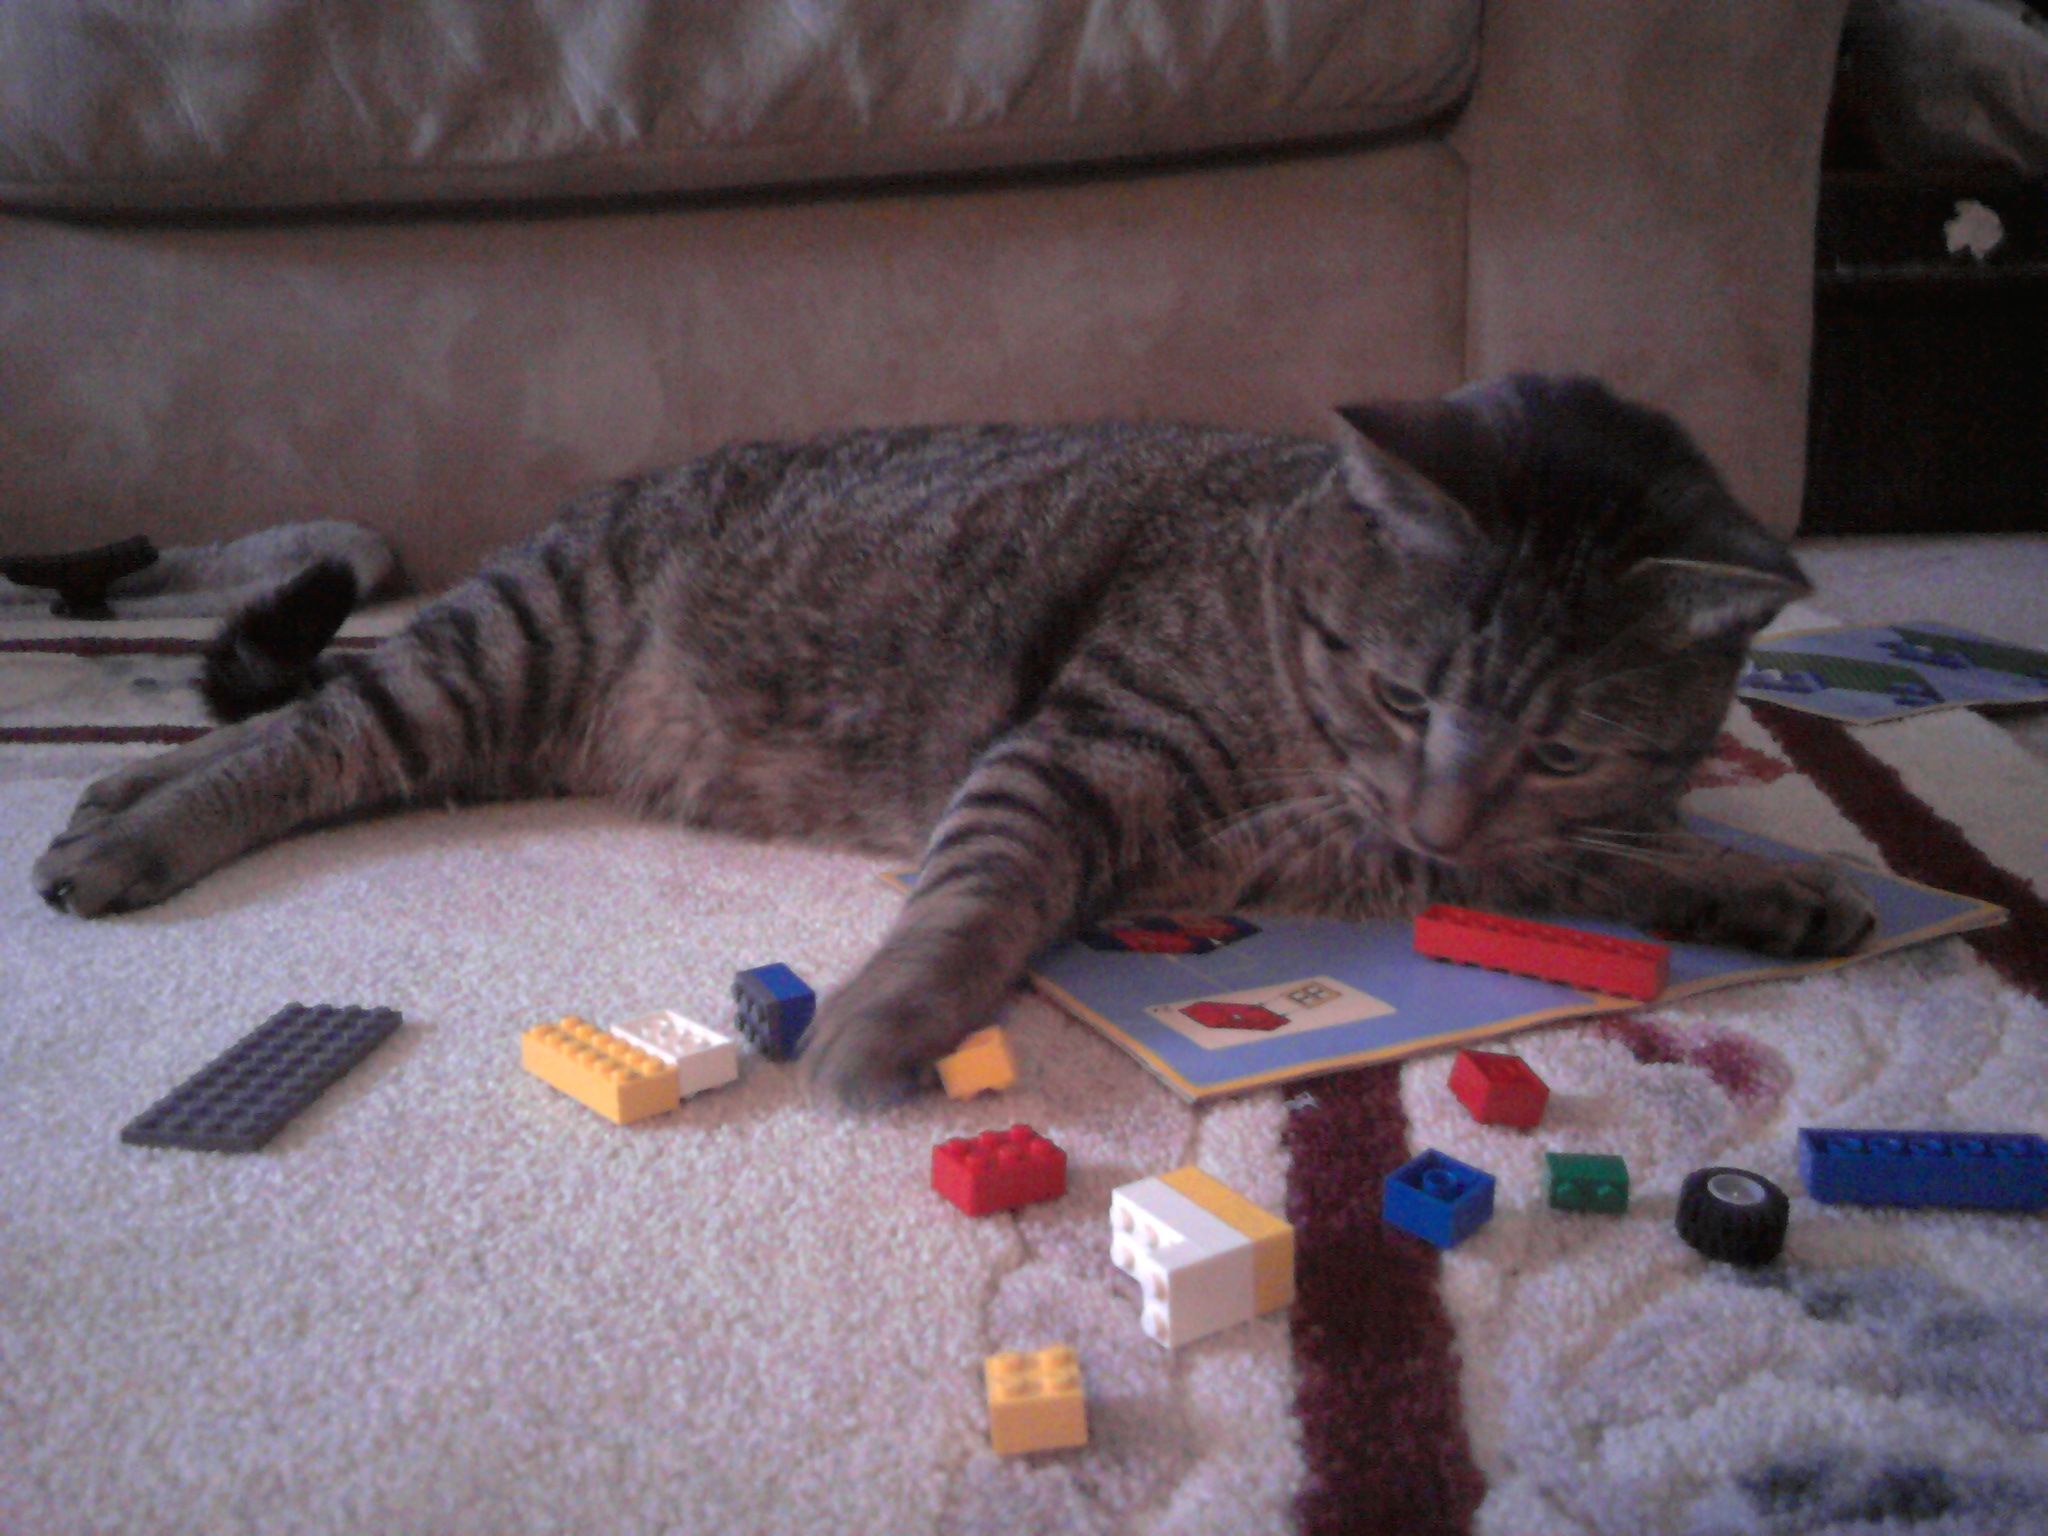 Just playing lego's.